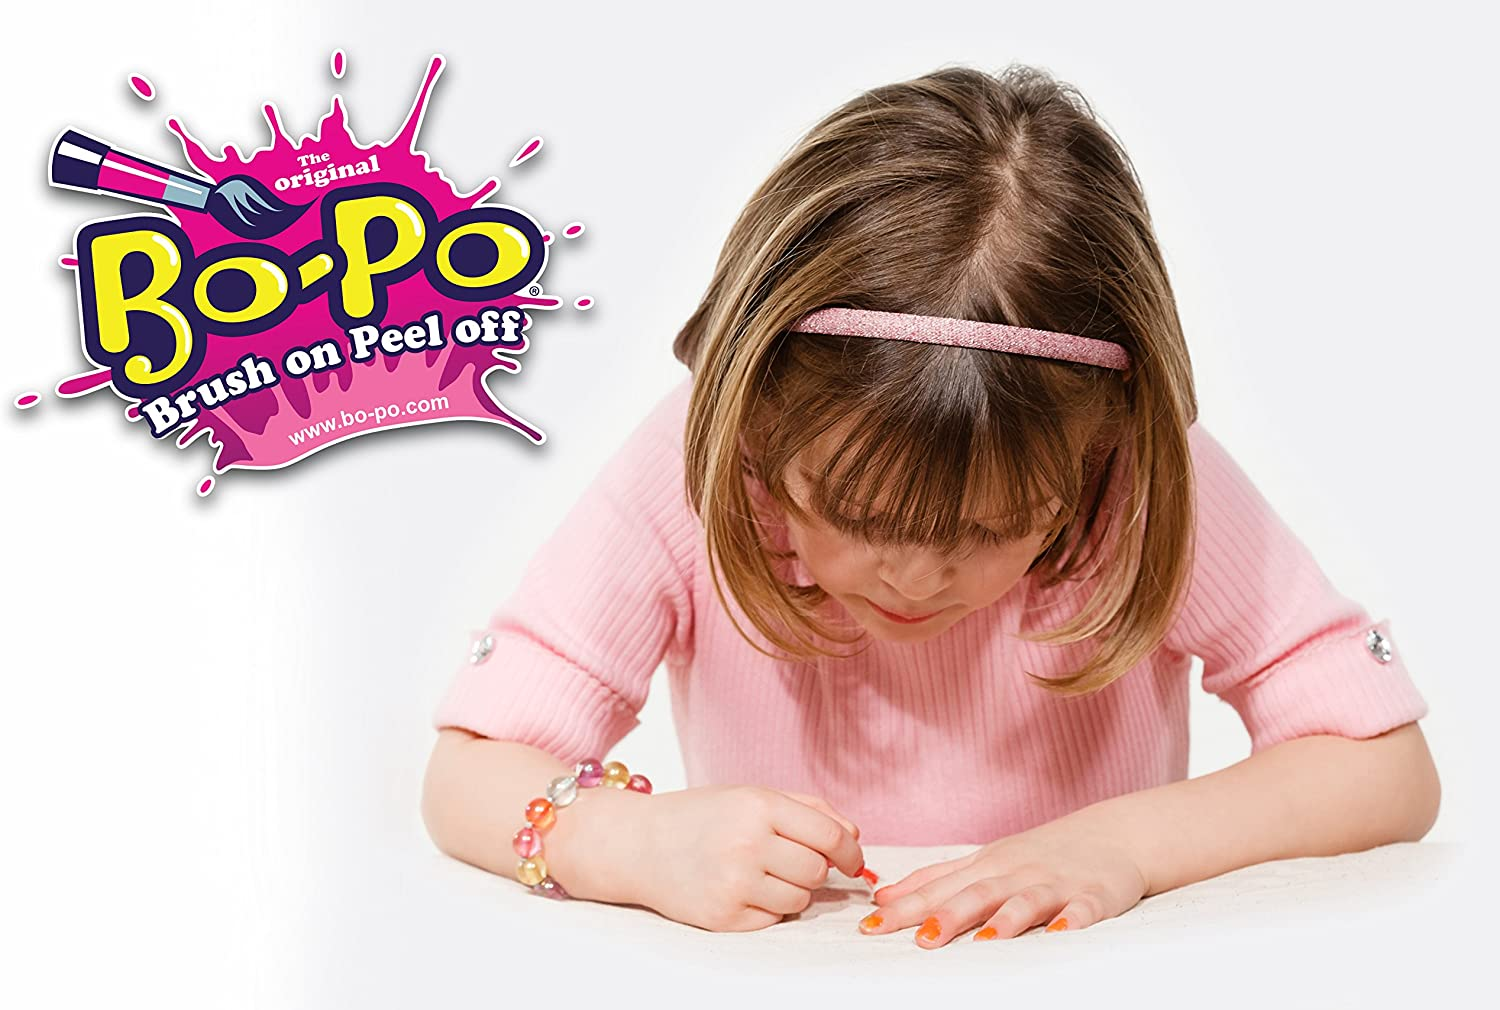 Kids New Bo-Po Nail Polish 8-Pack Colors May Vary Toddler Toy Gift Play Childs